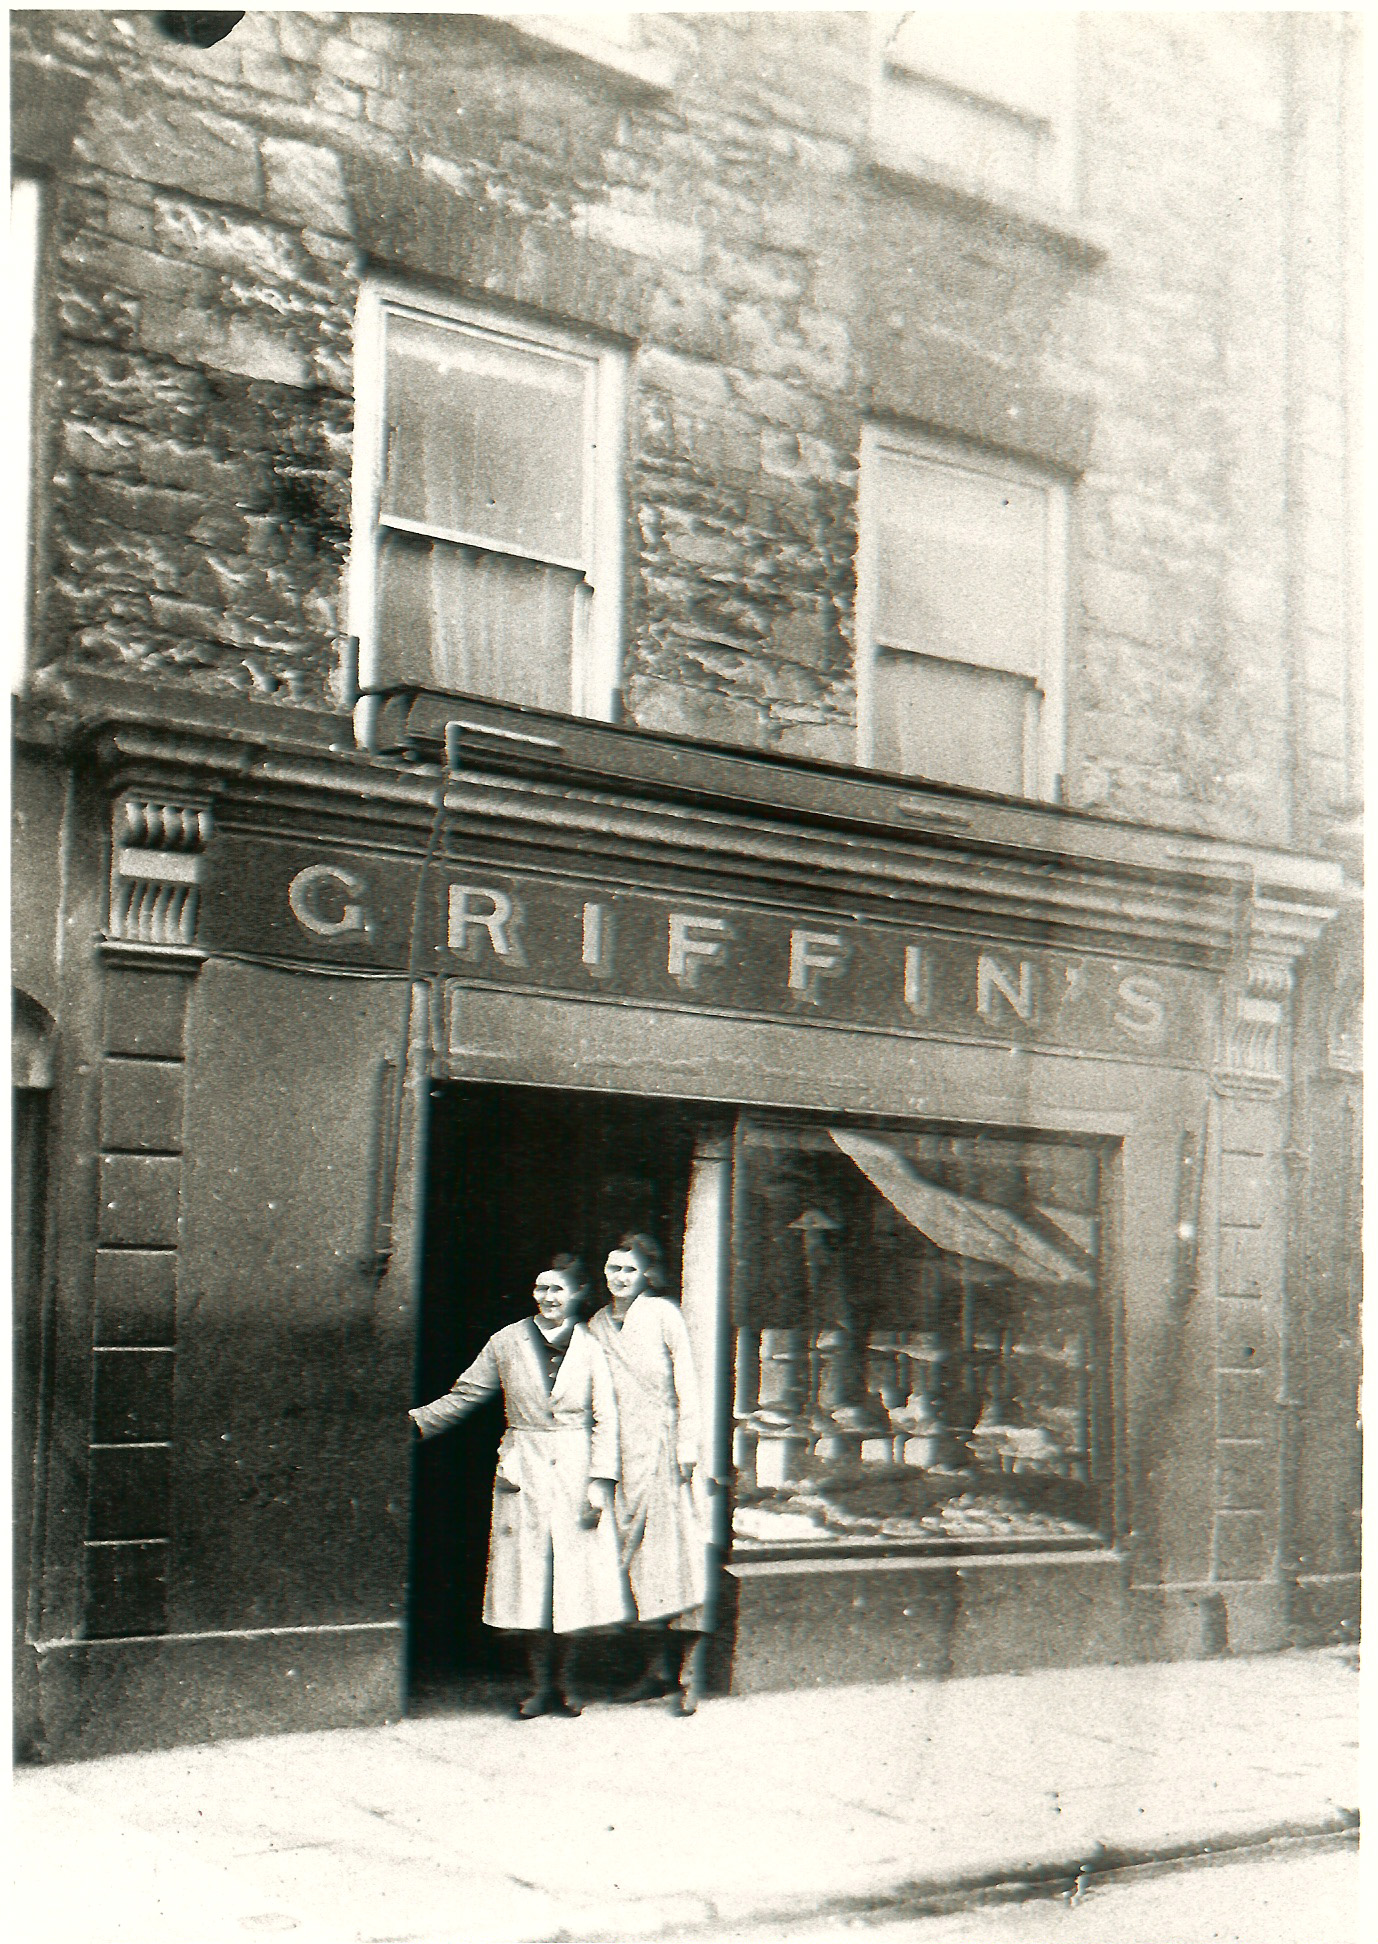 Griffin Bakery